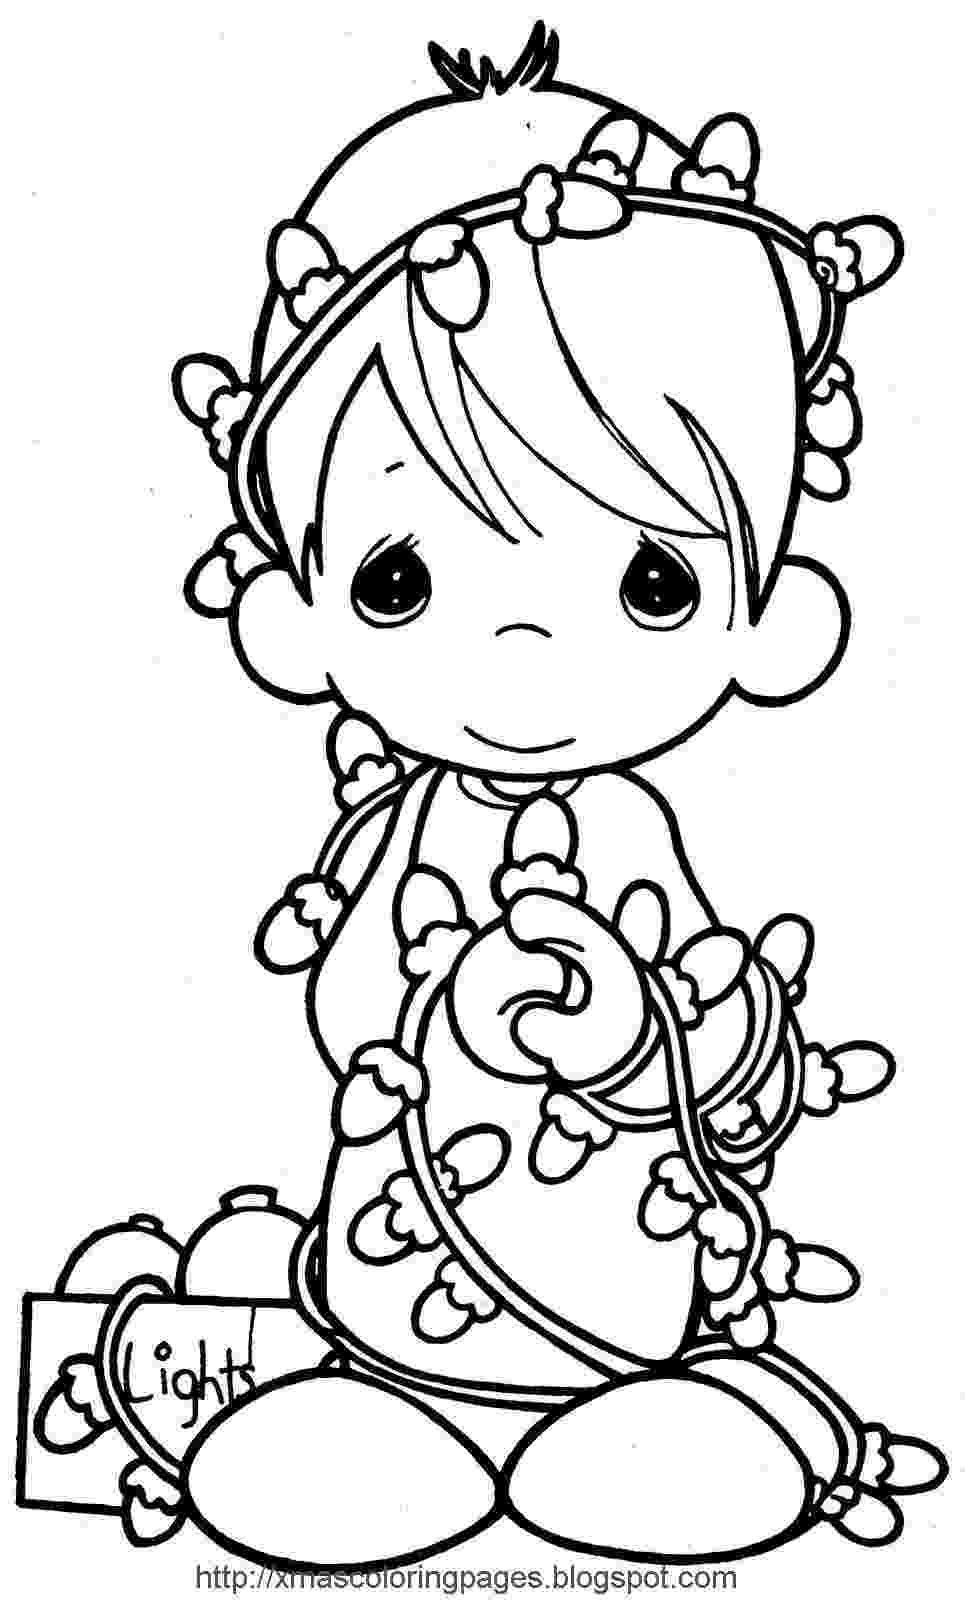 christmas angels to color 19 best christmas angel coloring page images on pinterest color angels to christmas